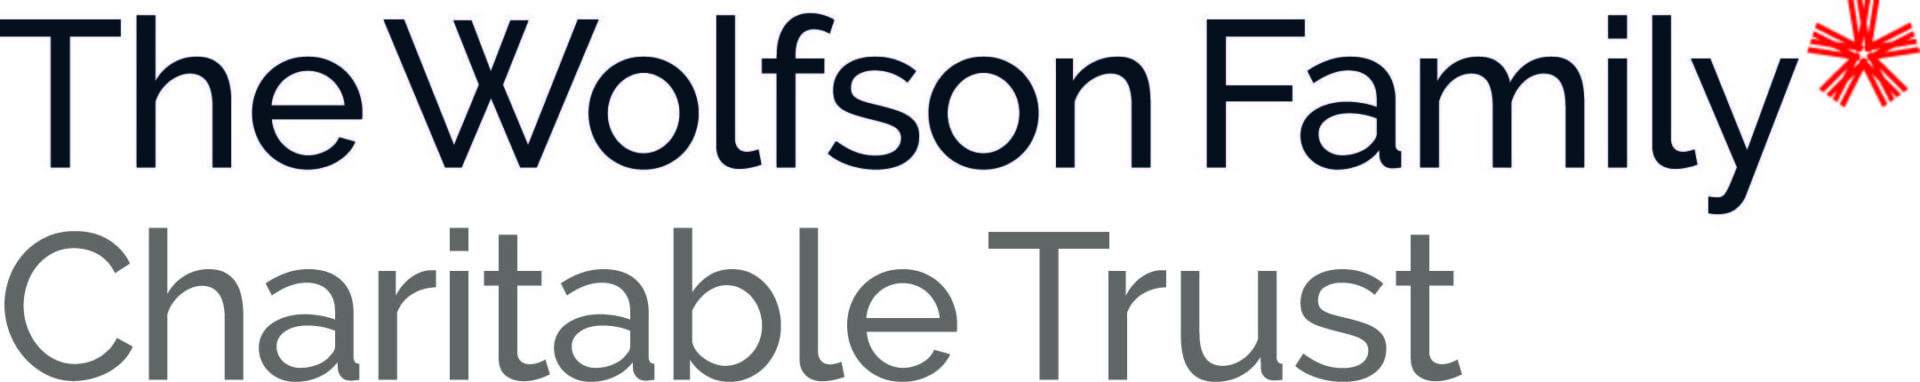 The Wolfson Family Charitable Trust Logo